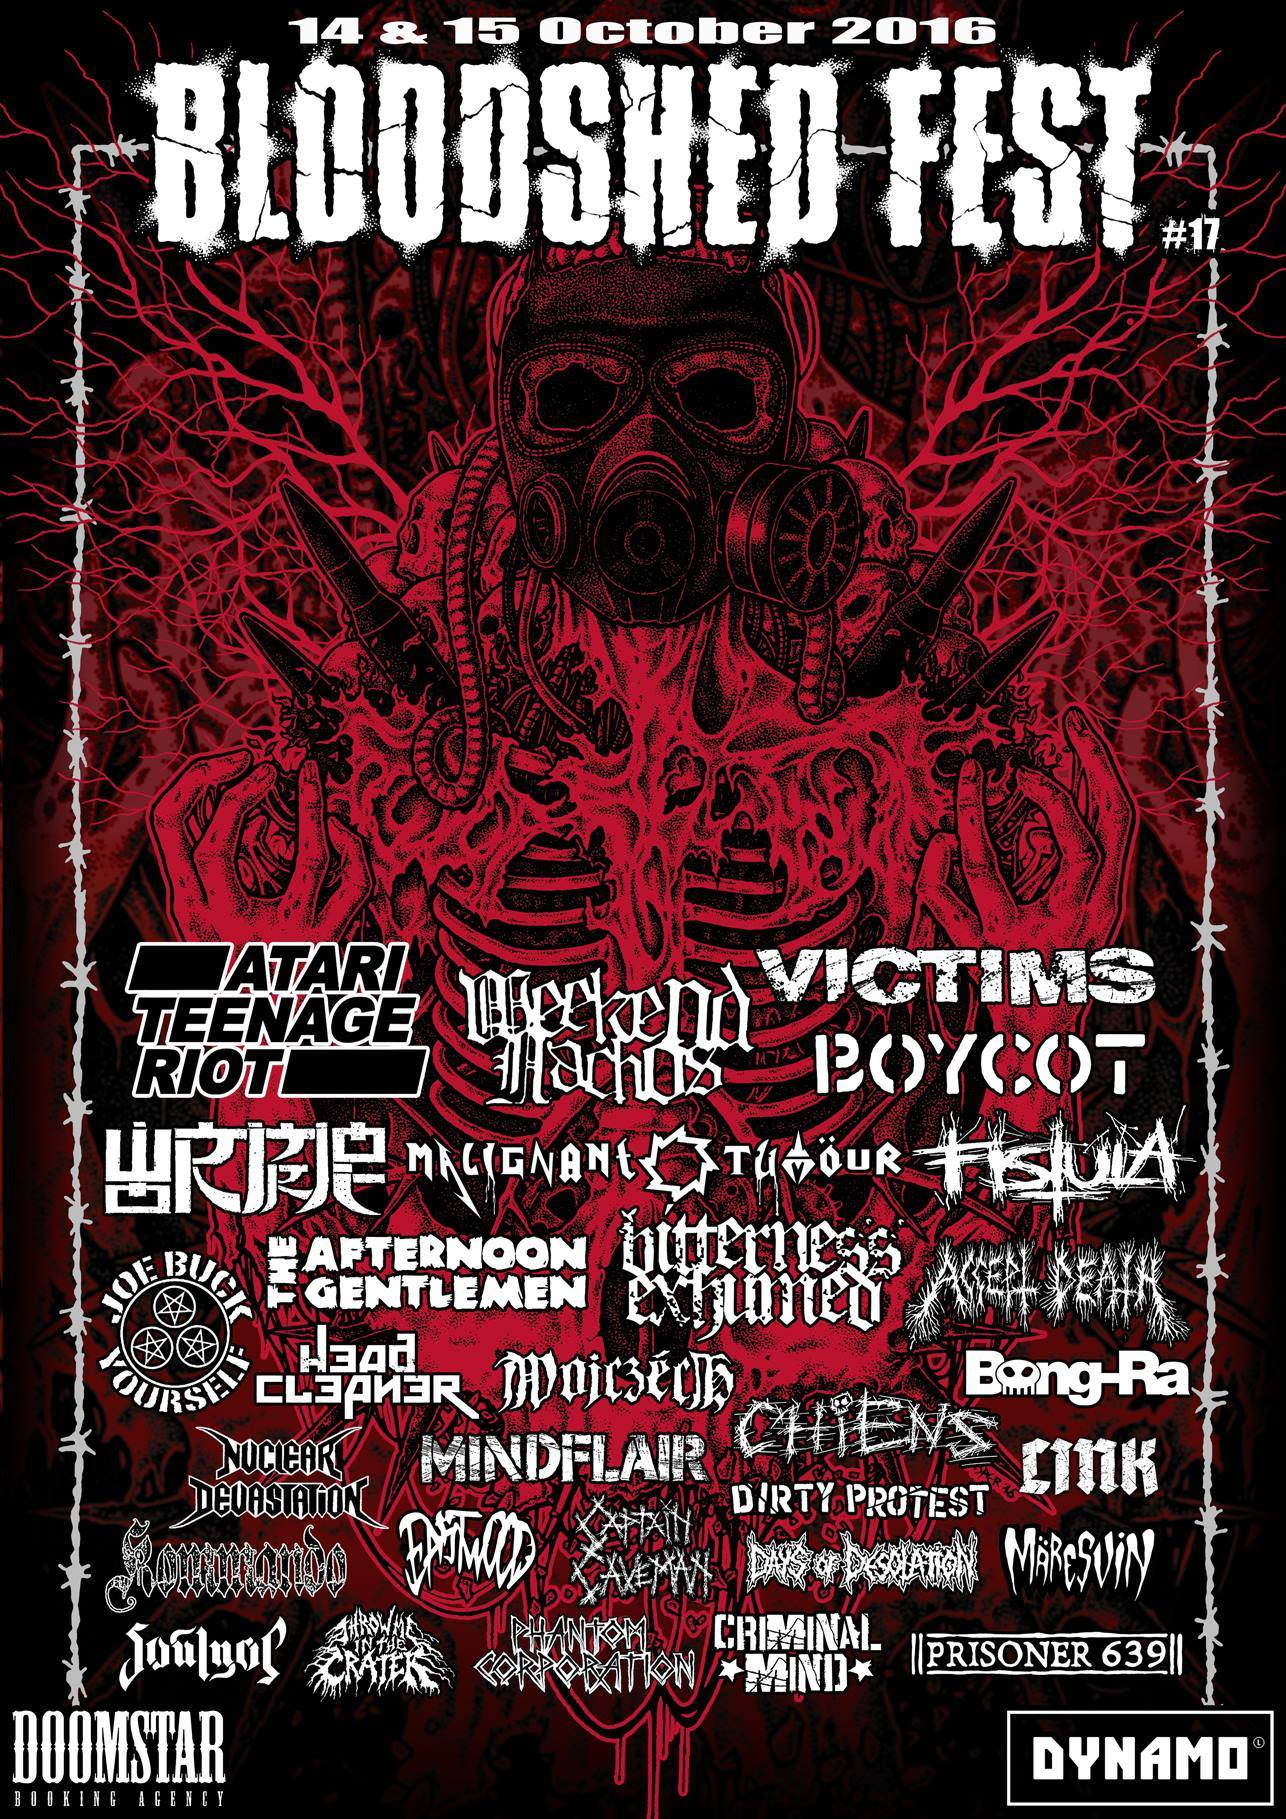 Bloodshed Fest 2016